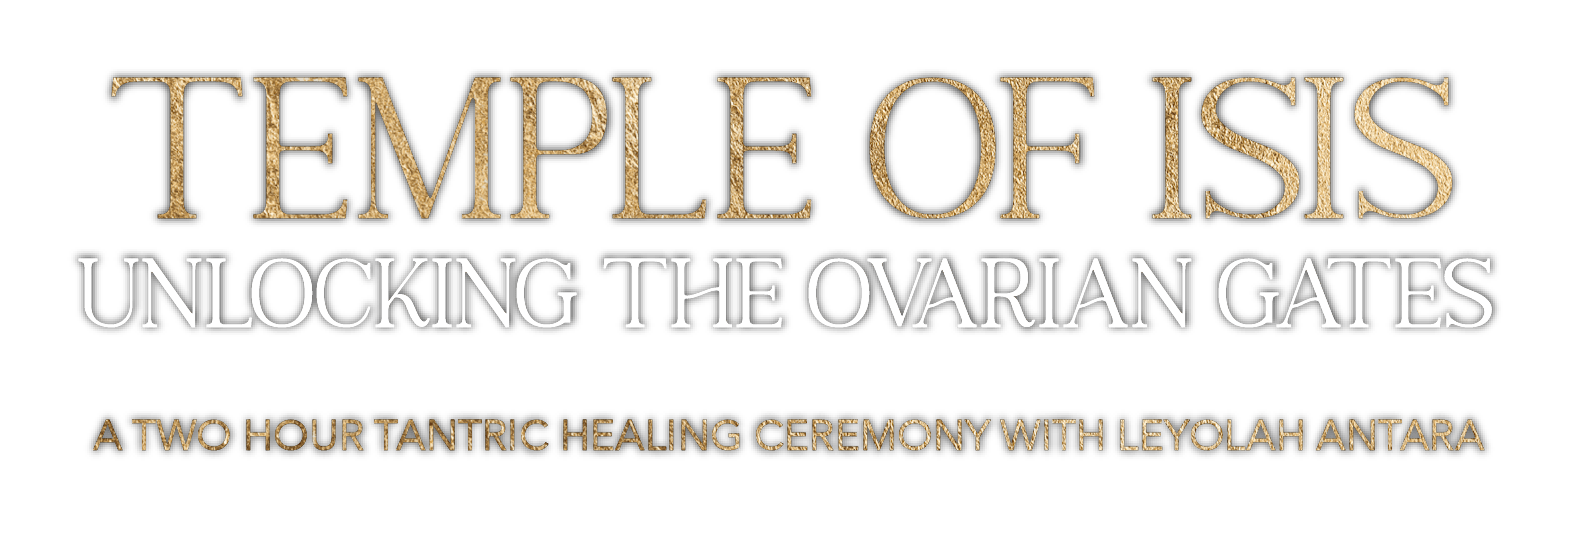 Temple of Isis - Unlocking The Ovarian Gates